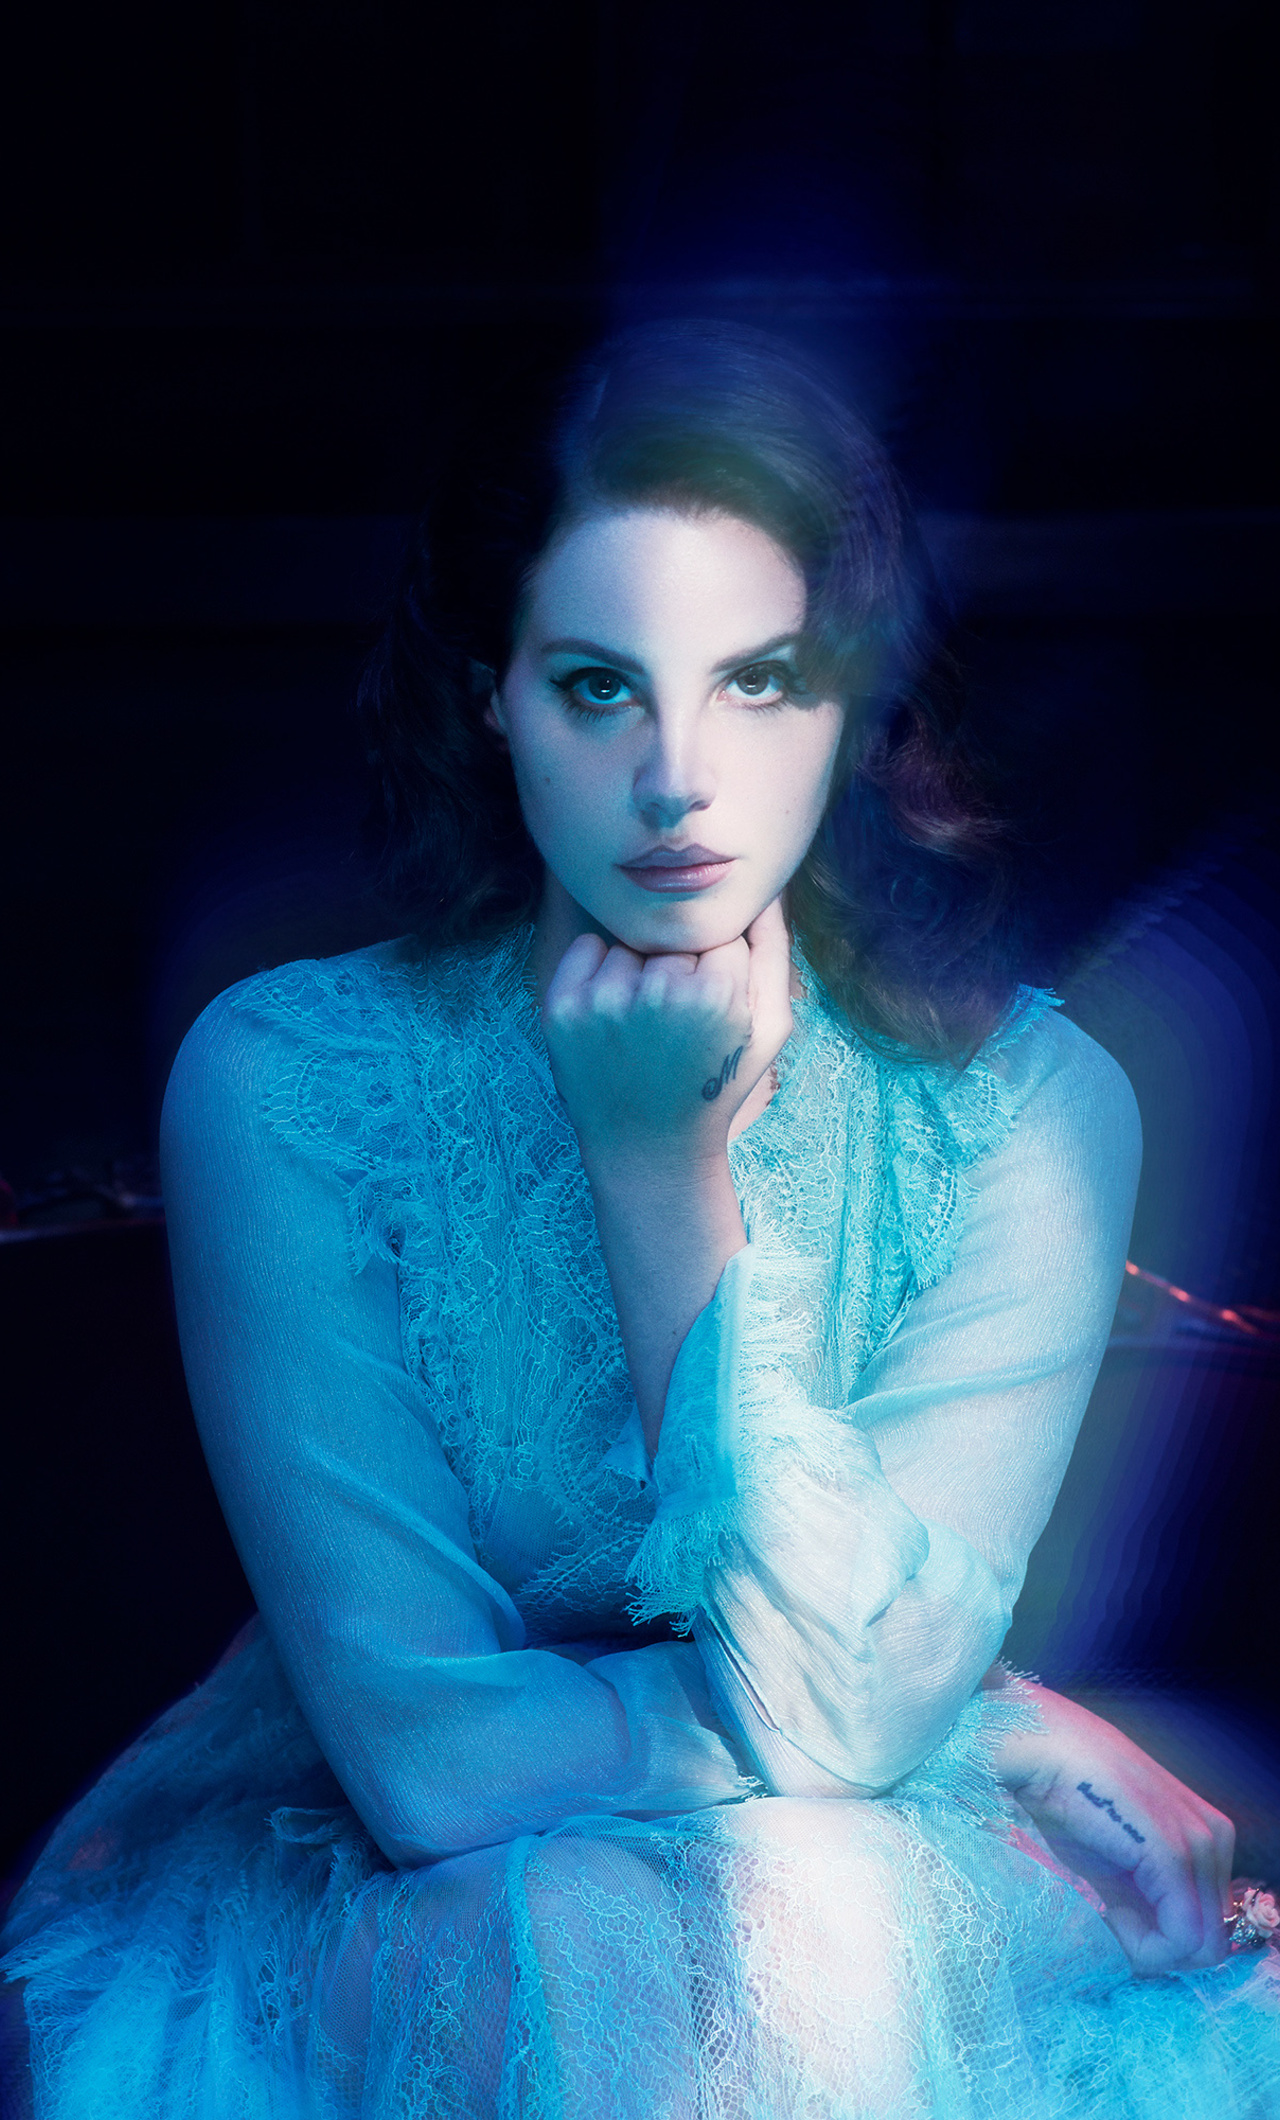 Lana Del Rey Complex Magazine Photoshoot 2018 (iPhone 6+)